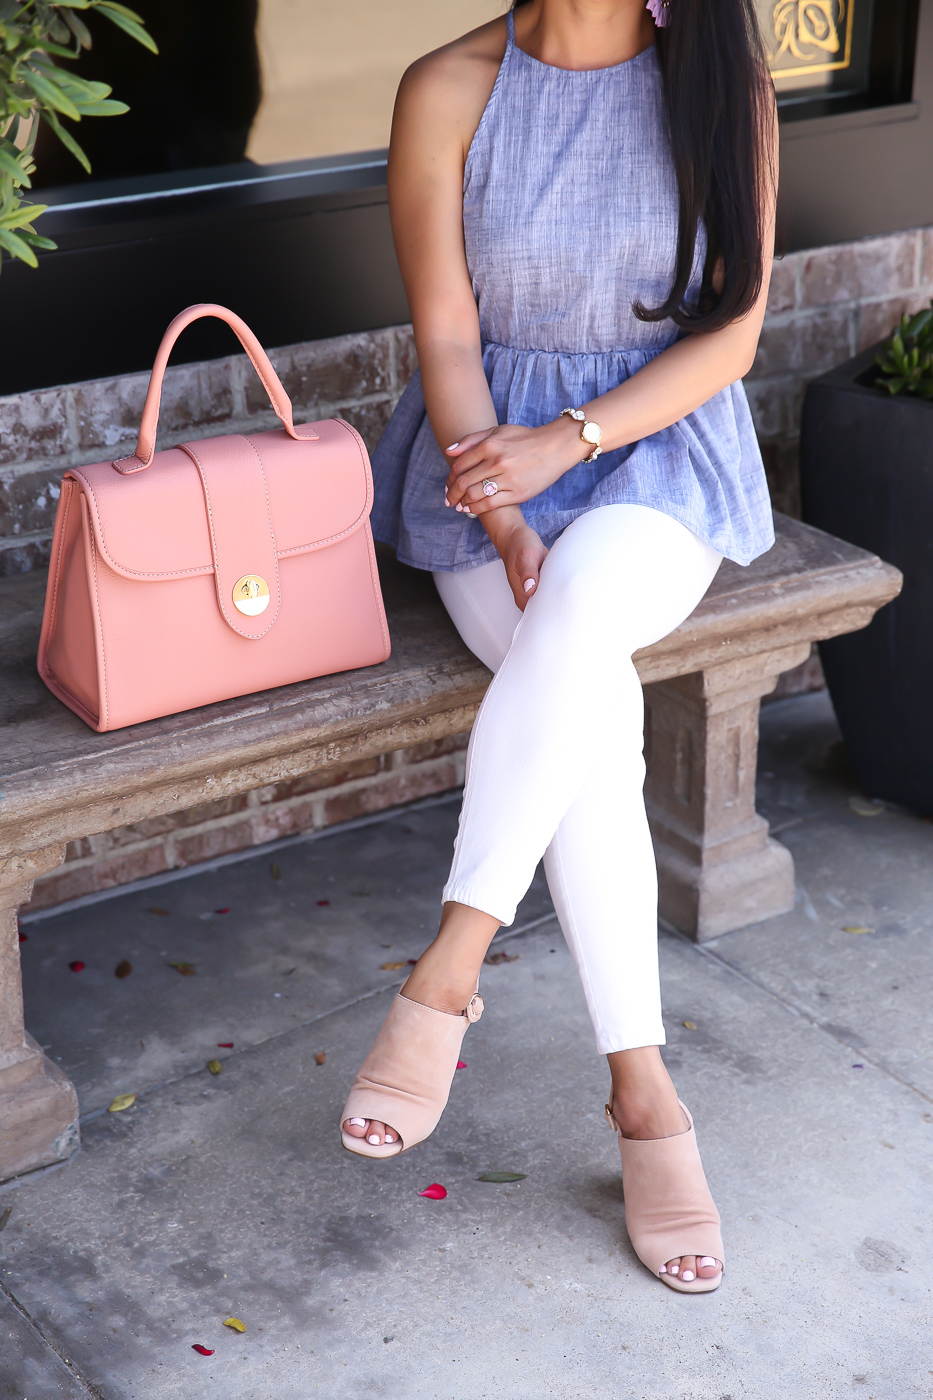 chambray peplum halter top white jeans sling back sandals summer outfit idea